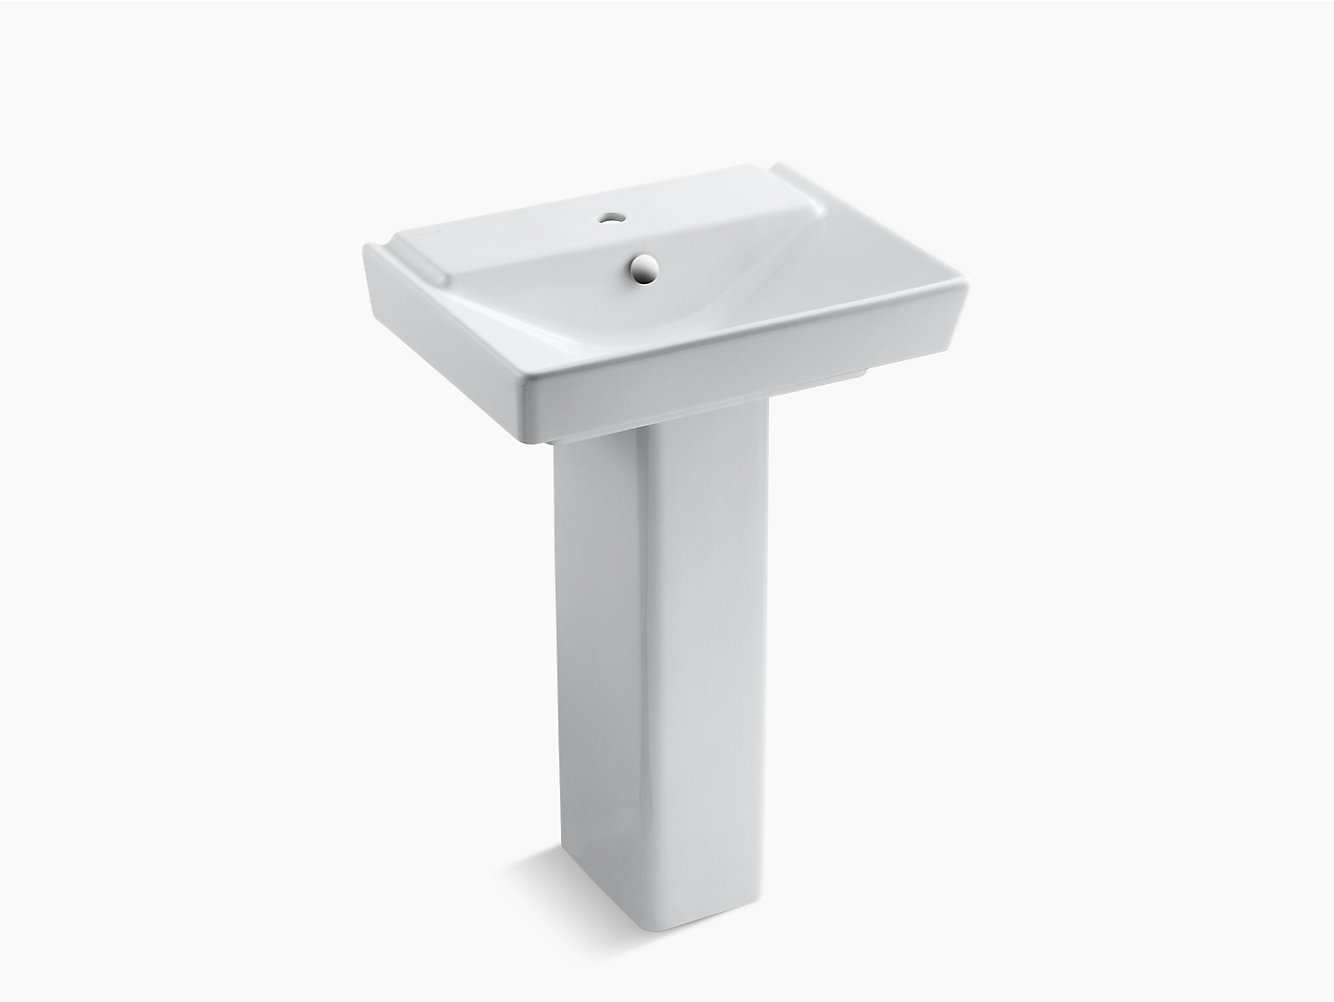 white htm china sink vitreous space a small cloakroom pedestal pd pre saver sinks grade